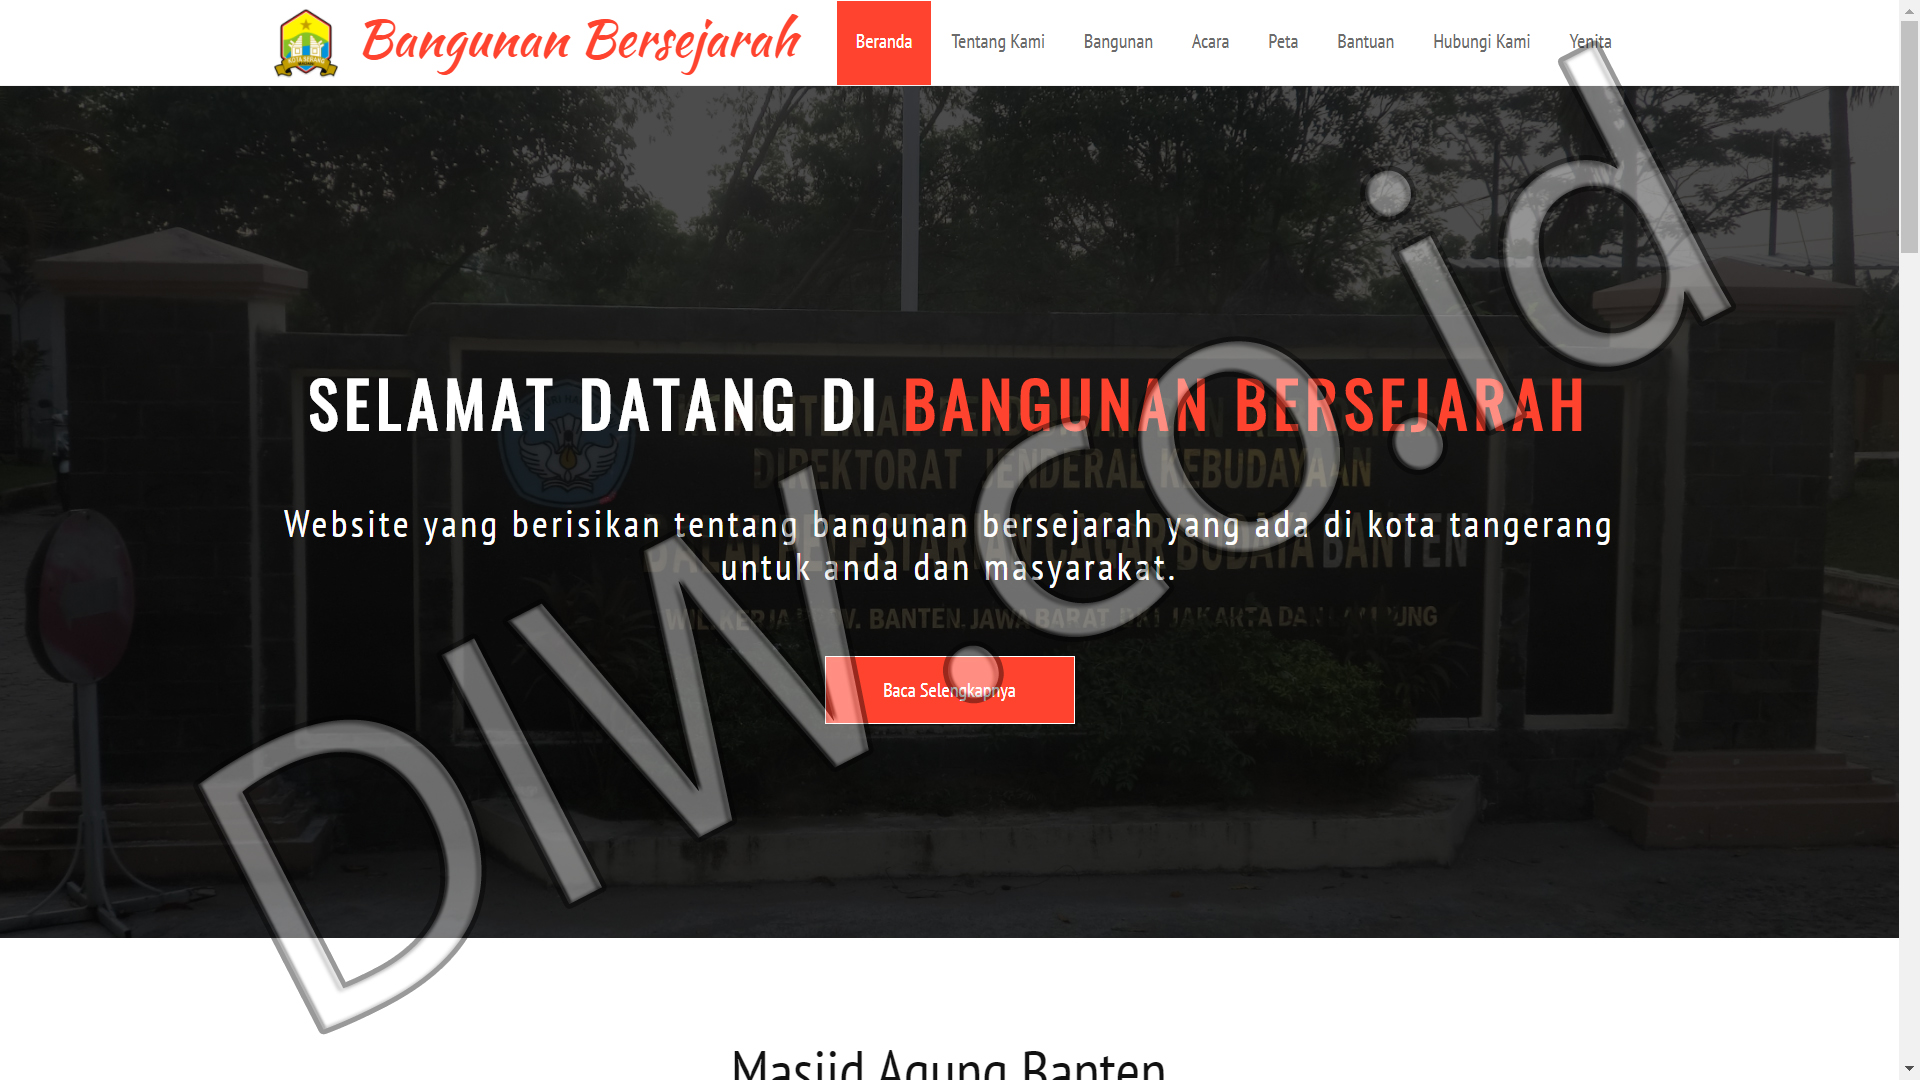 Portfolio 1 - Bangunan Bersejarah - Andri Sunardi - Freelancer - Web Developer - CEO DIW.co.id